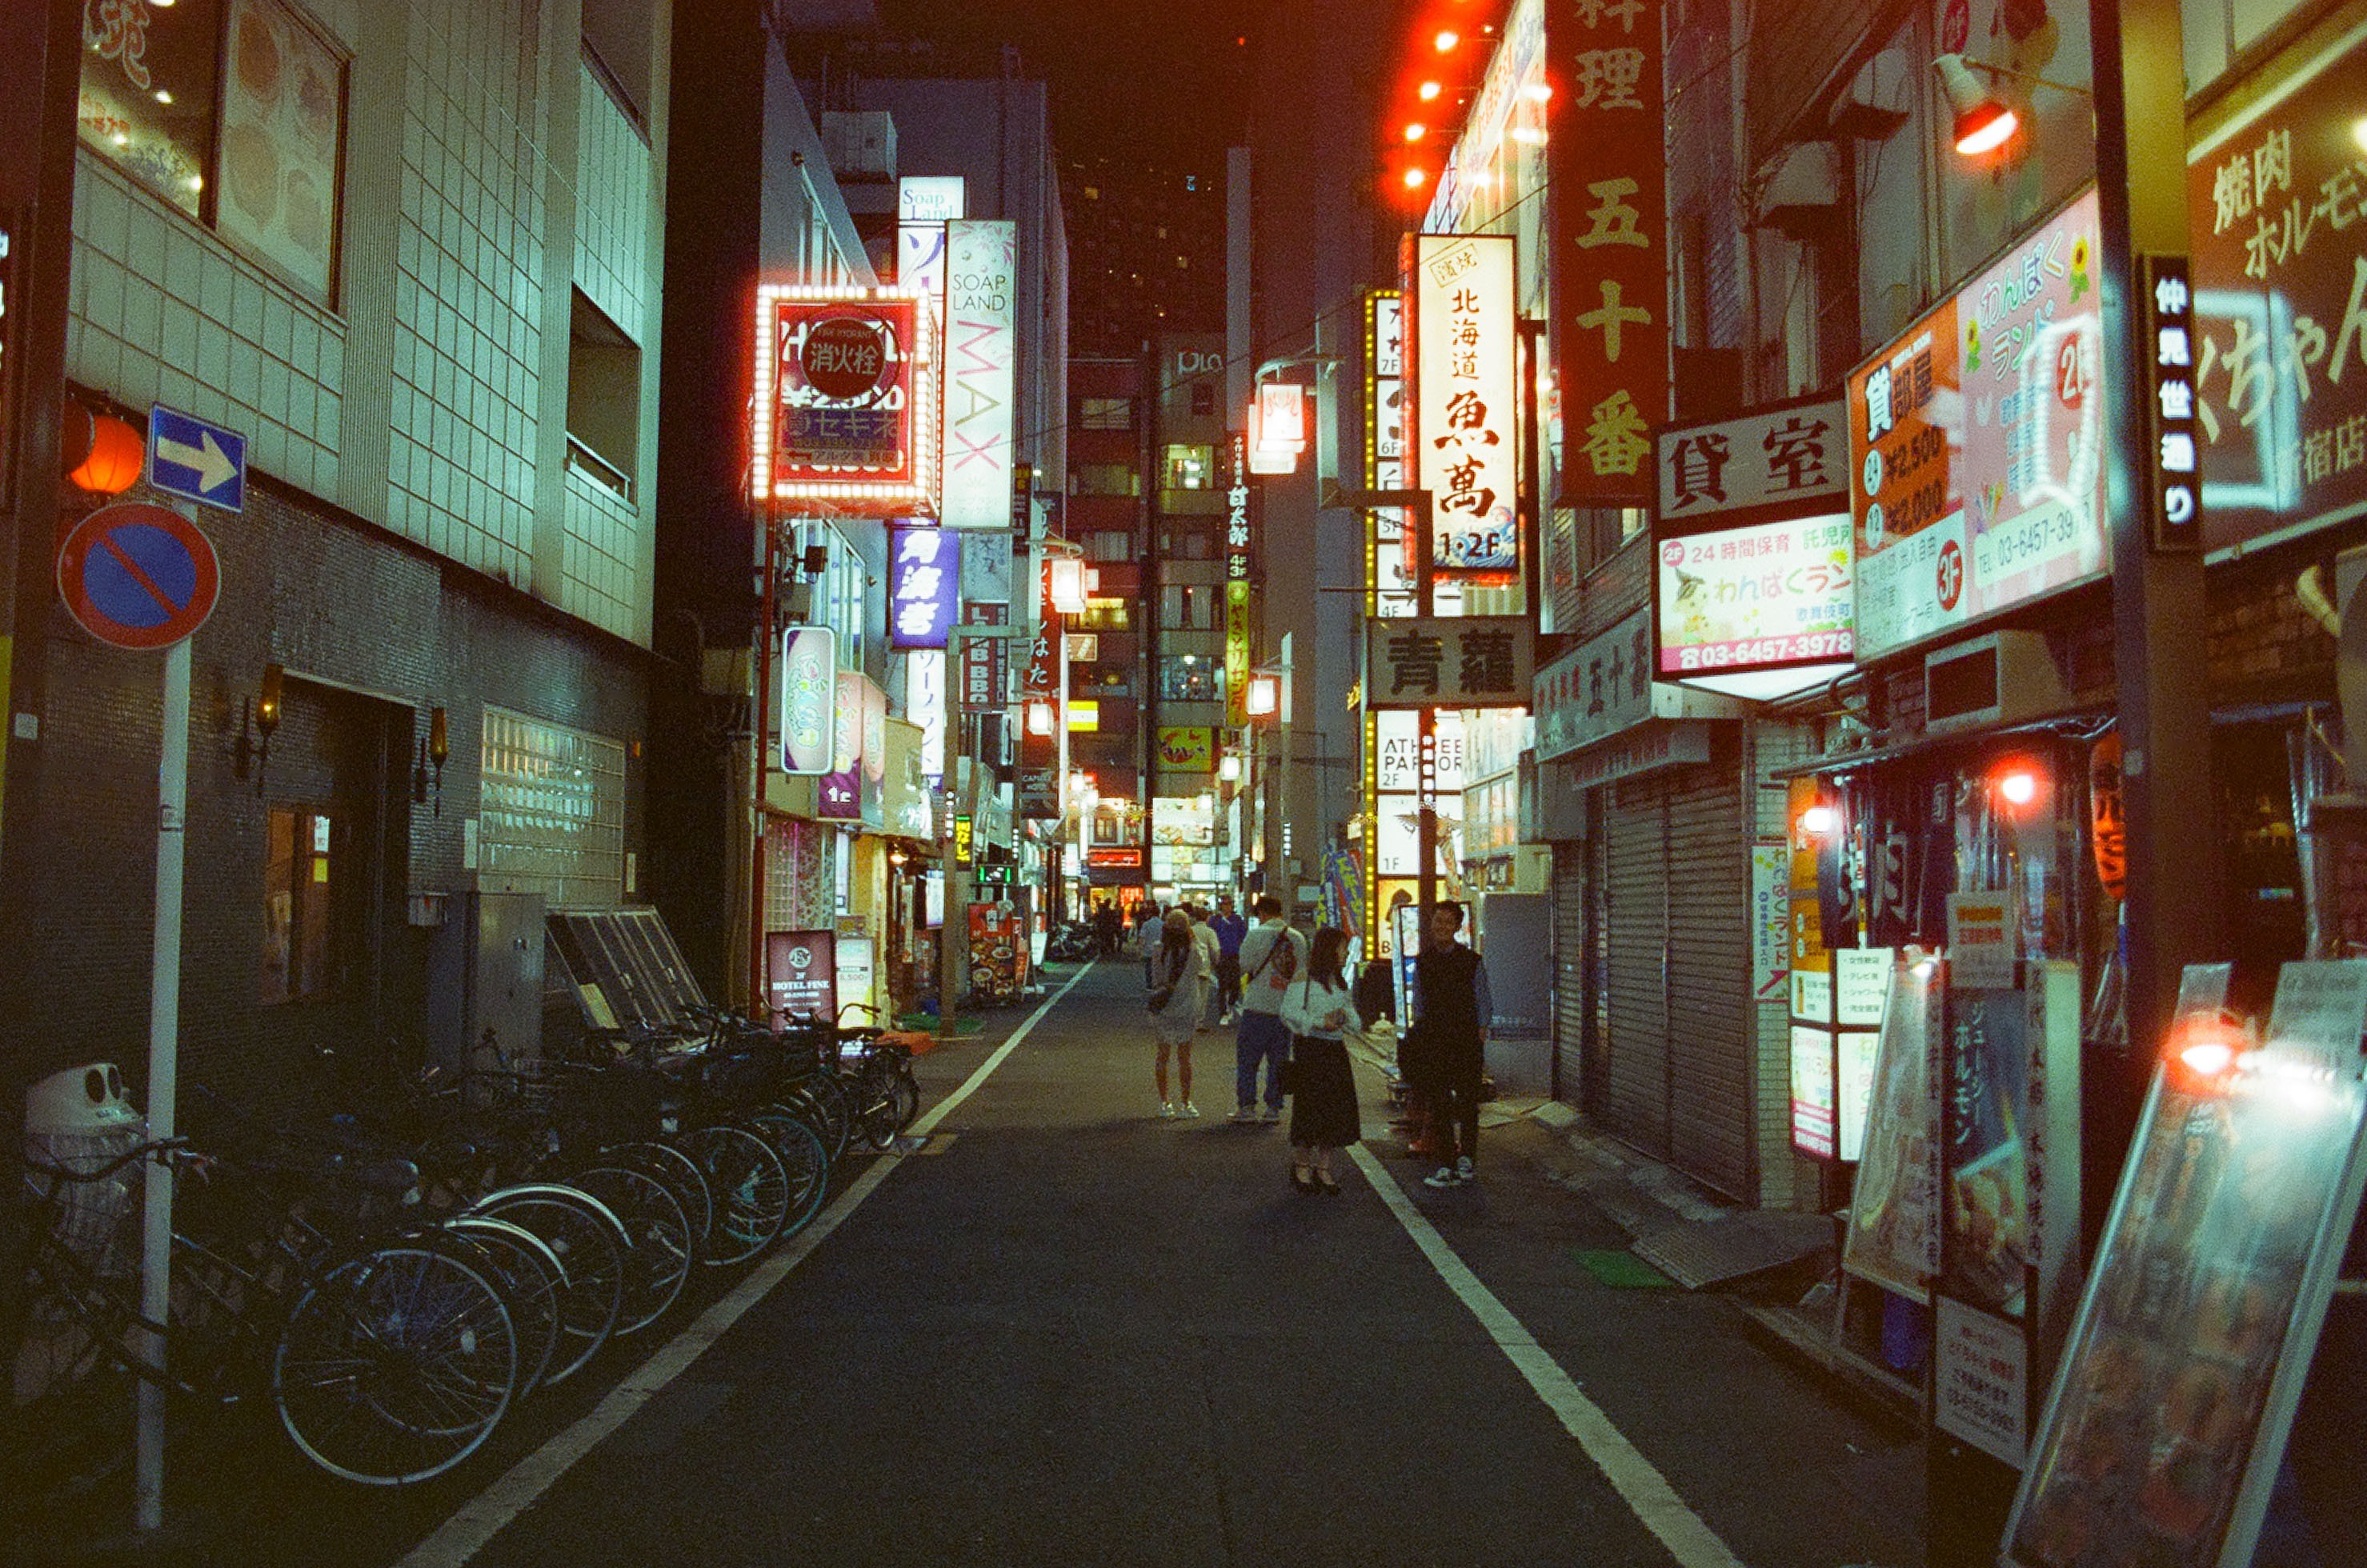 I shot Cinestill 800 film in Tokyo - Tom Grimbert - Medium